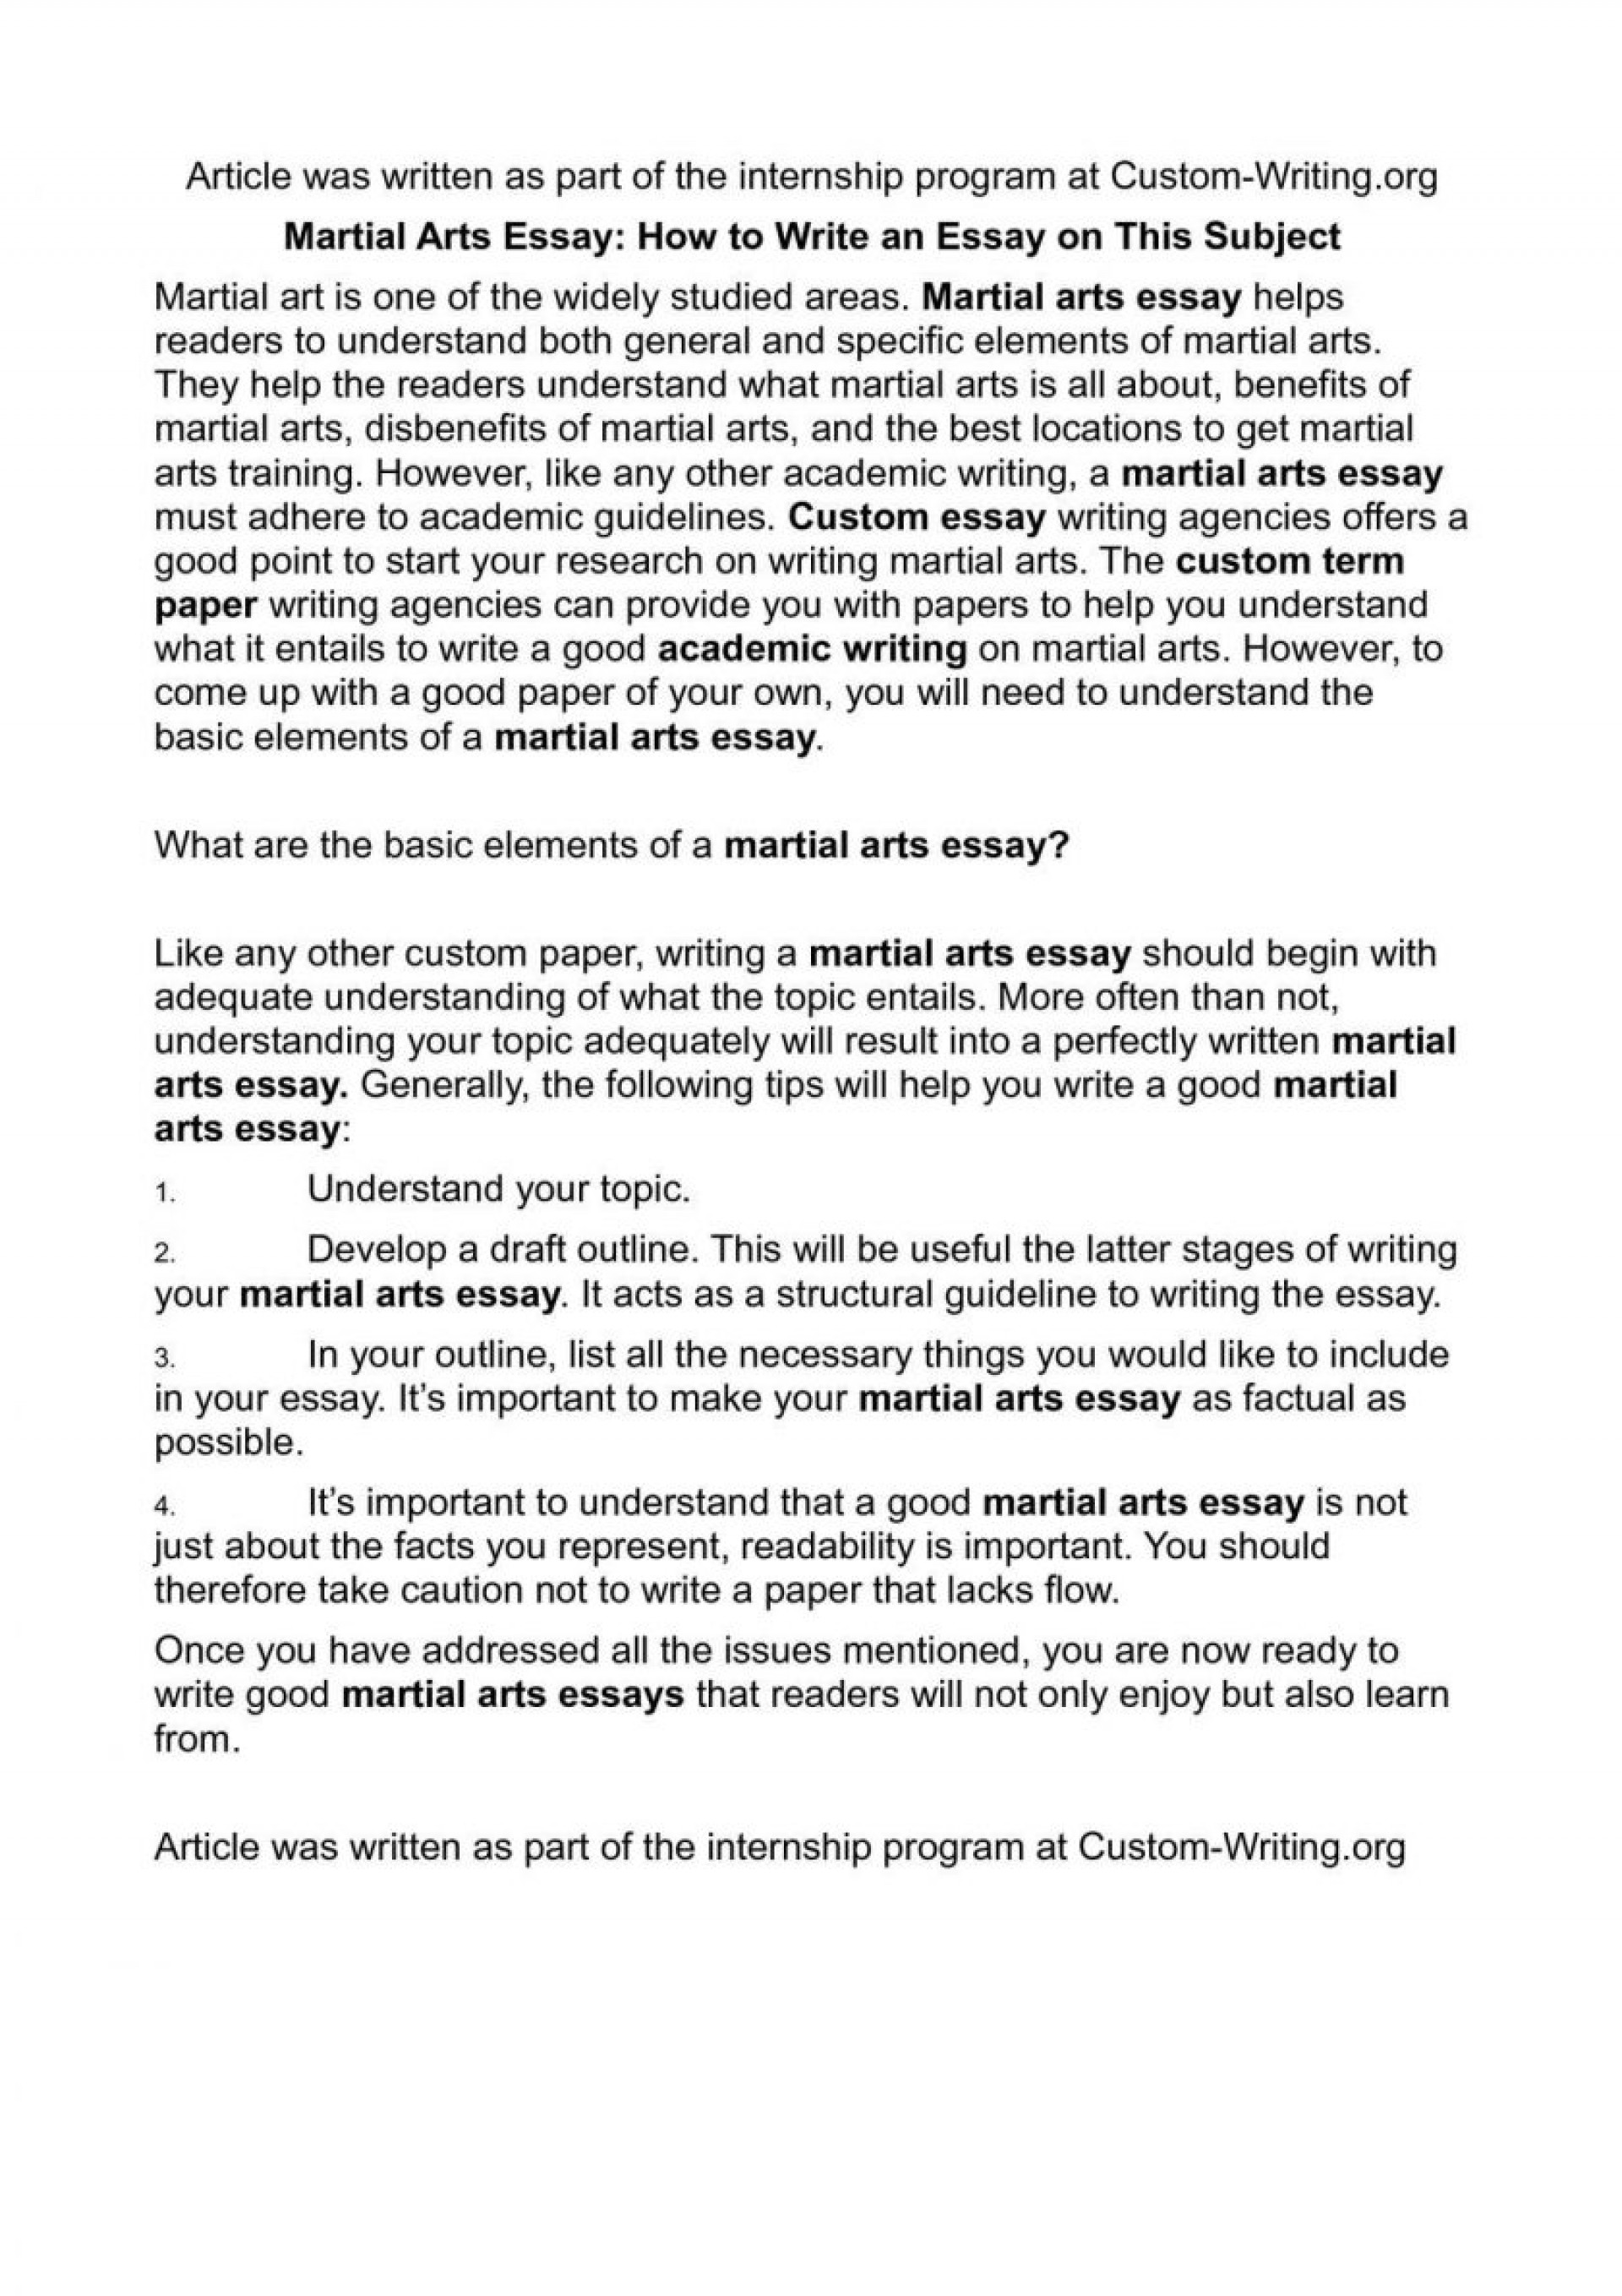 018 Help Me Write My College Essay Zoology Research Paper Cheap How To Application First Formidable For Someone 1920